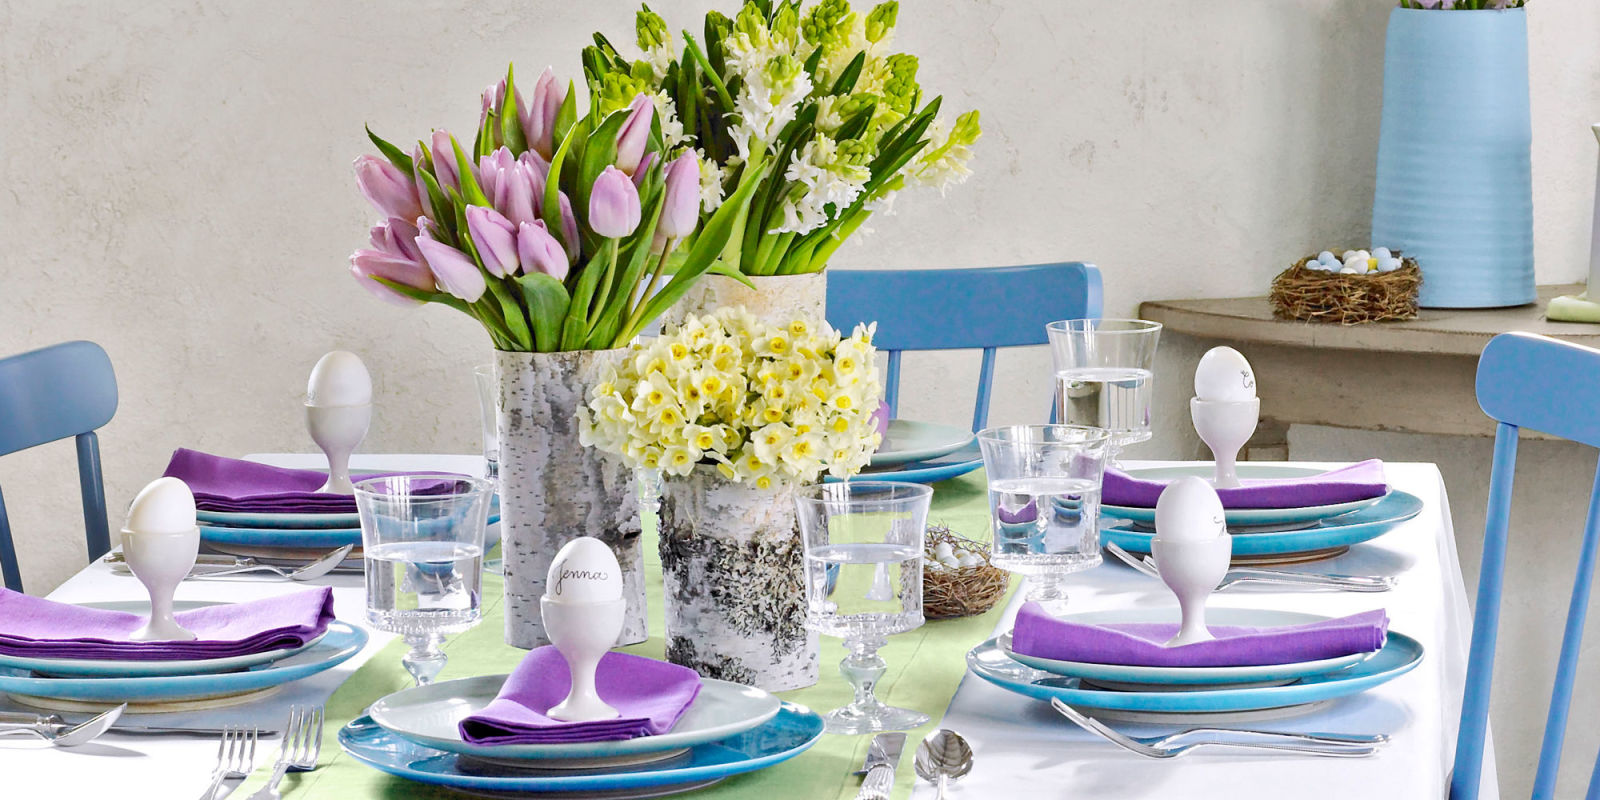 33 easter table decorations centerpieces for easter - Table easter decorations ...